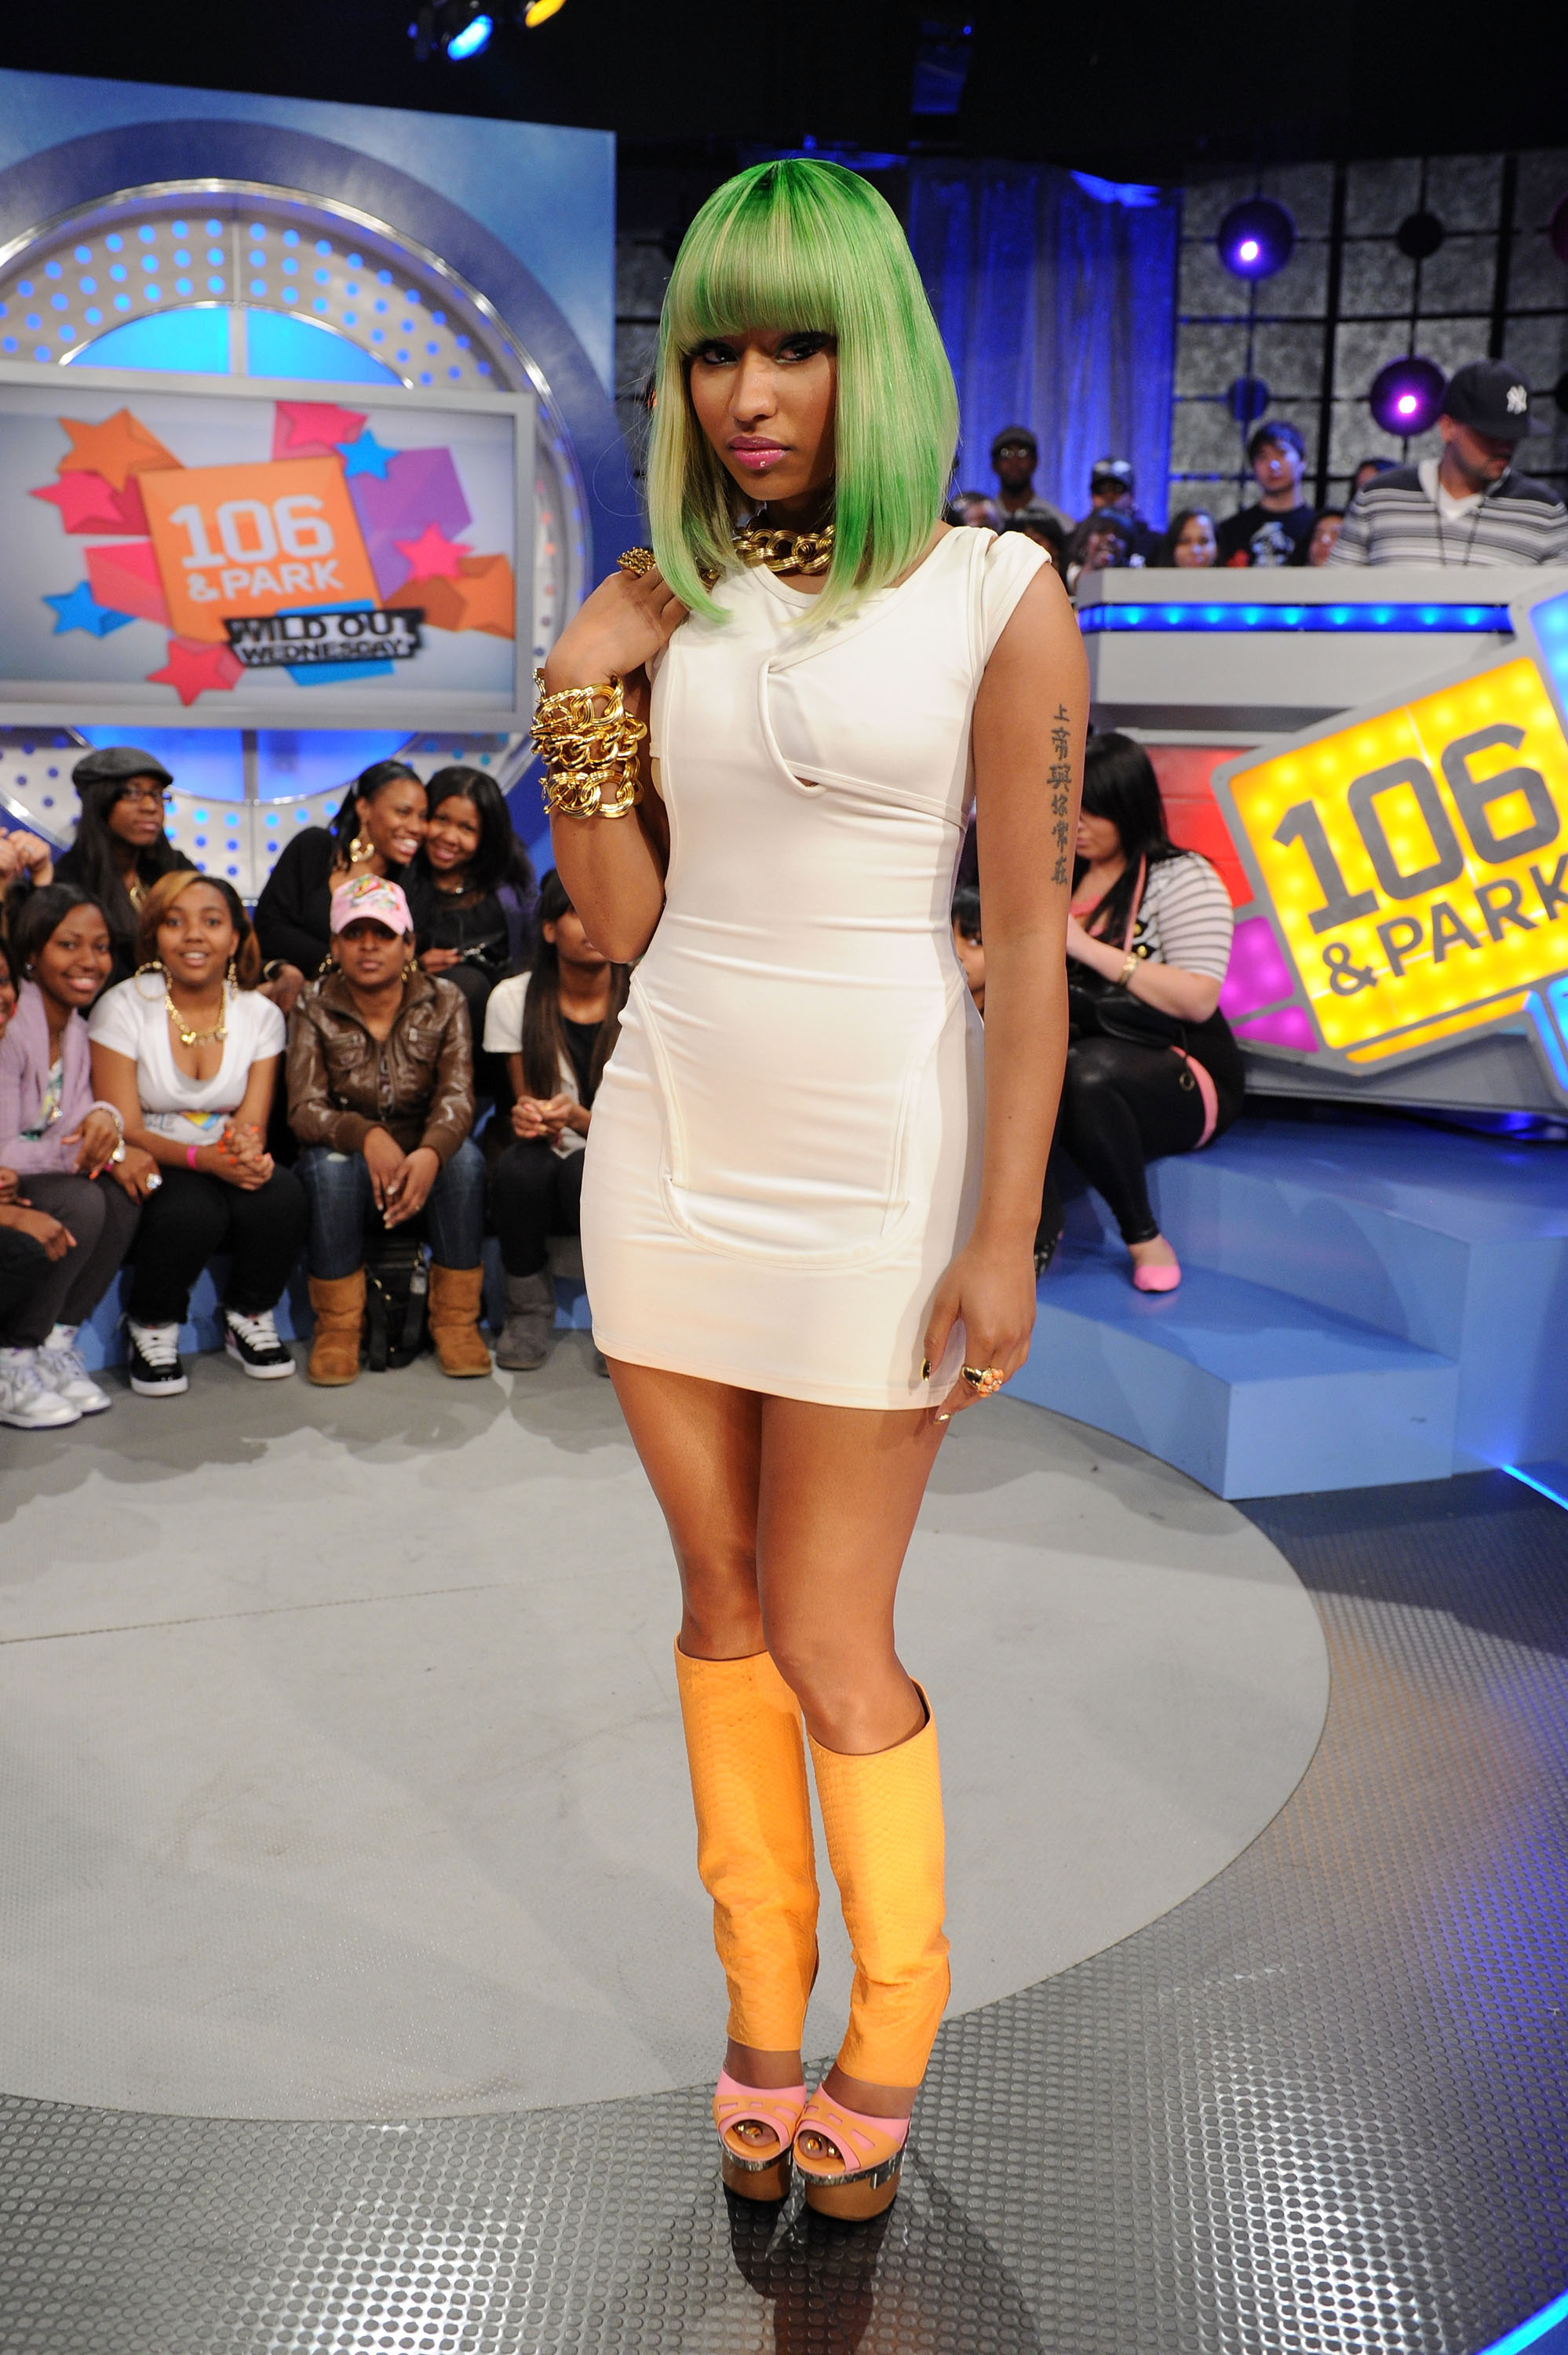 Nicki Minaj's style evolution from 2009 to today [GALLERY]